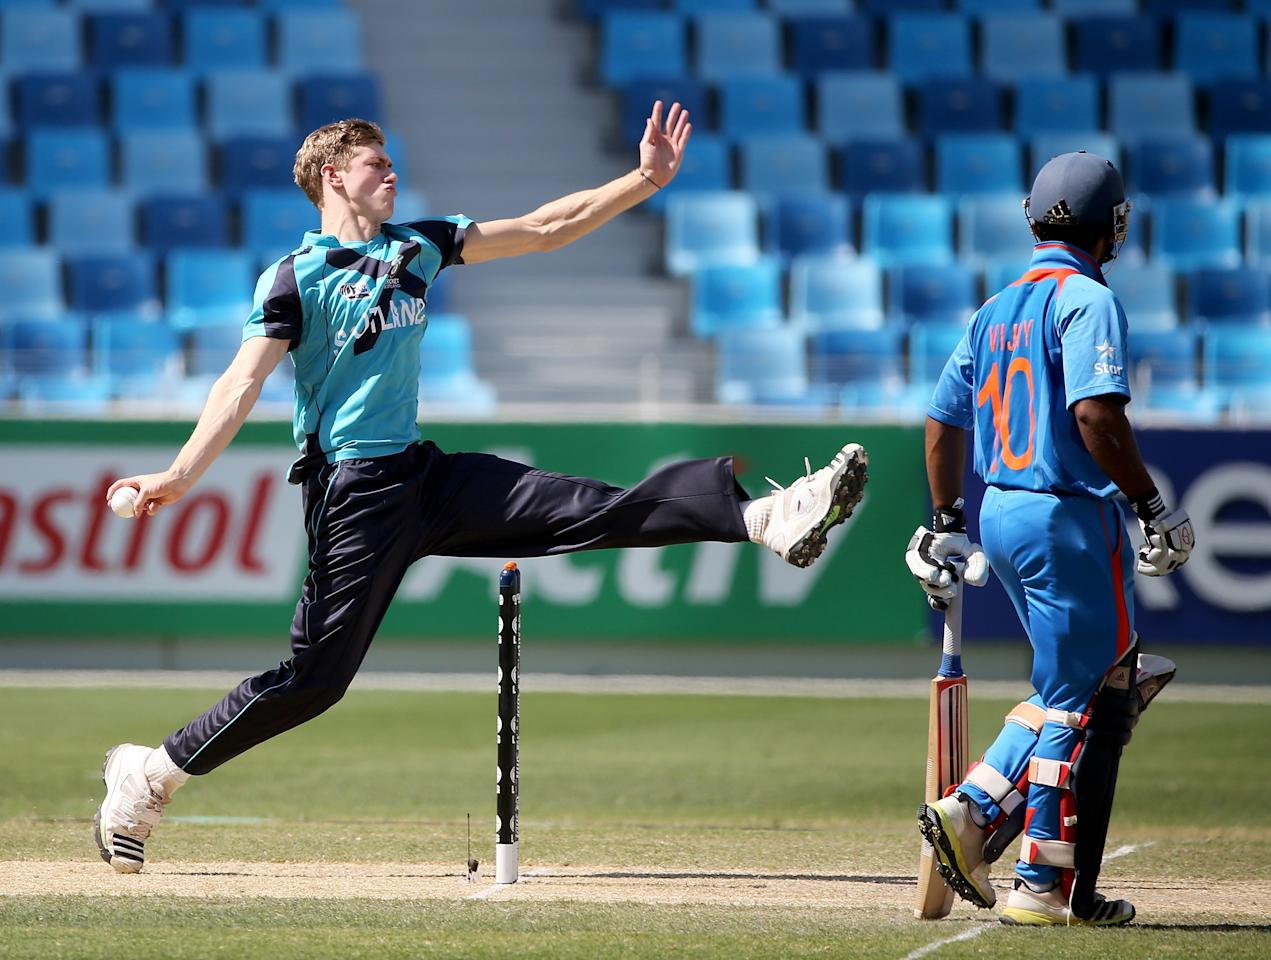 DUBAI, UNITED ARAB EMIRATES - FEBRUARY 17:  Gavin Main of Scotland bowls during the ICC U19 Cricket World Cup 2014 match between India and Scotland at the Dubai Sports City Cricket Stadium on February 17, 2014 in Dubai, United Arab Emirates.  (Photo by Francois Nel - IDI/IDI via Getty Images)